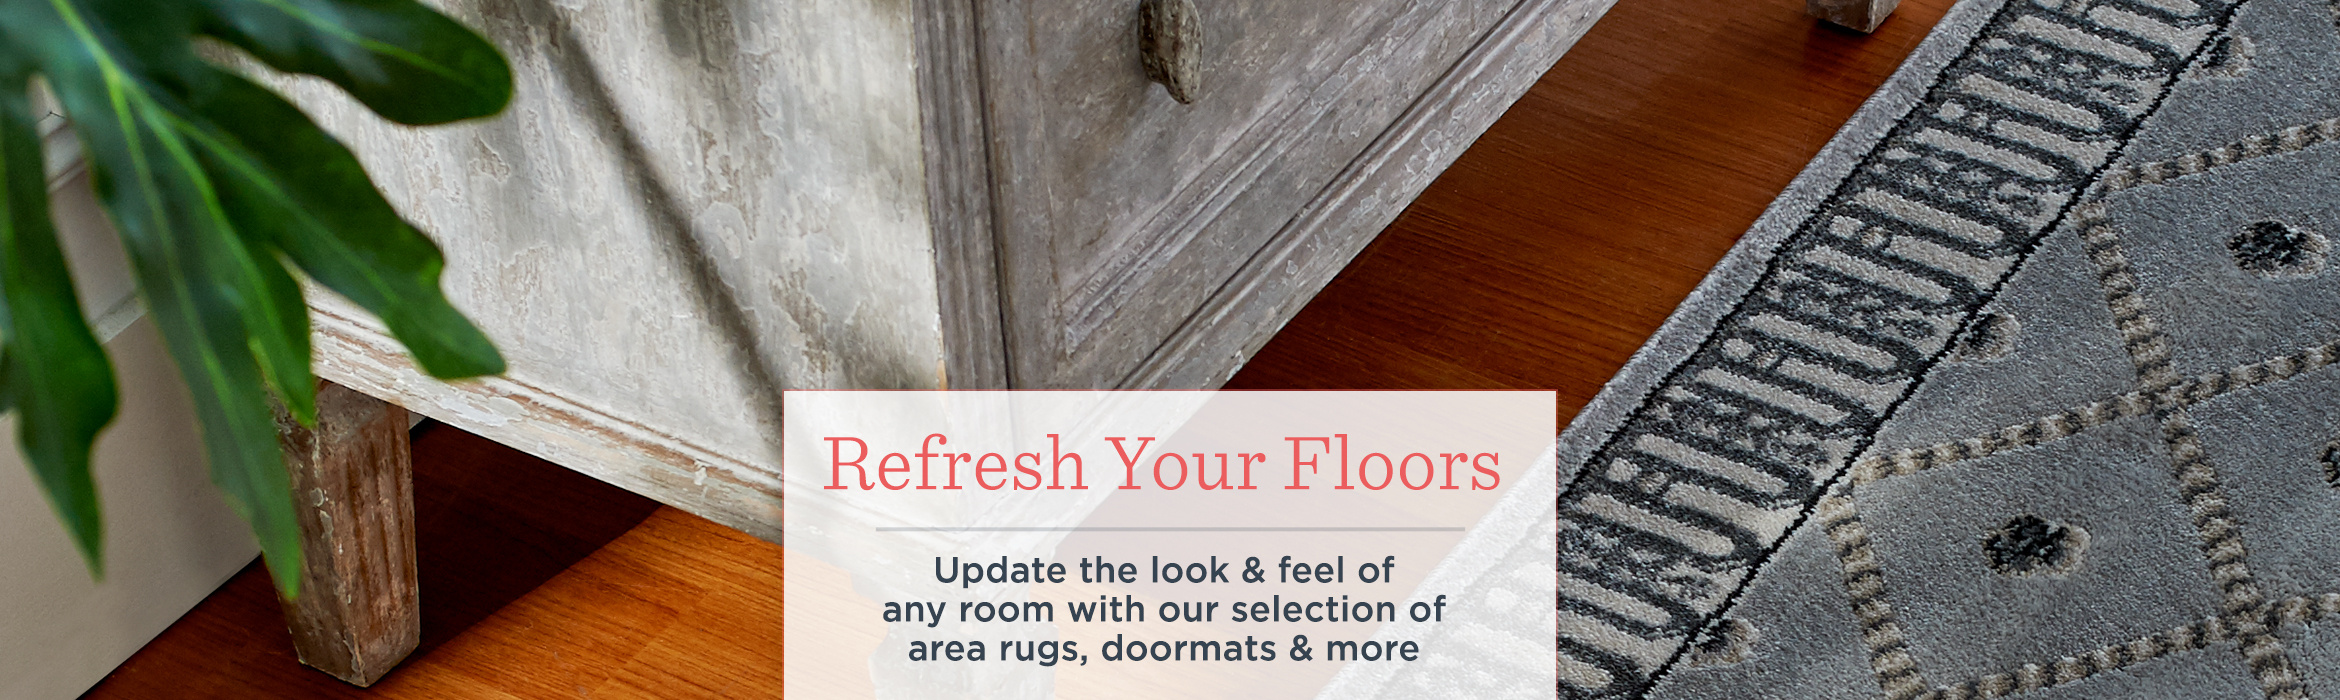 Refresh Your Floors — Update the look & feel of any room with our selection of area rugs, doormats & more.